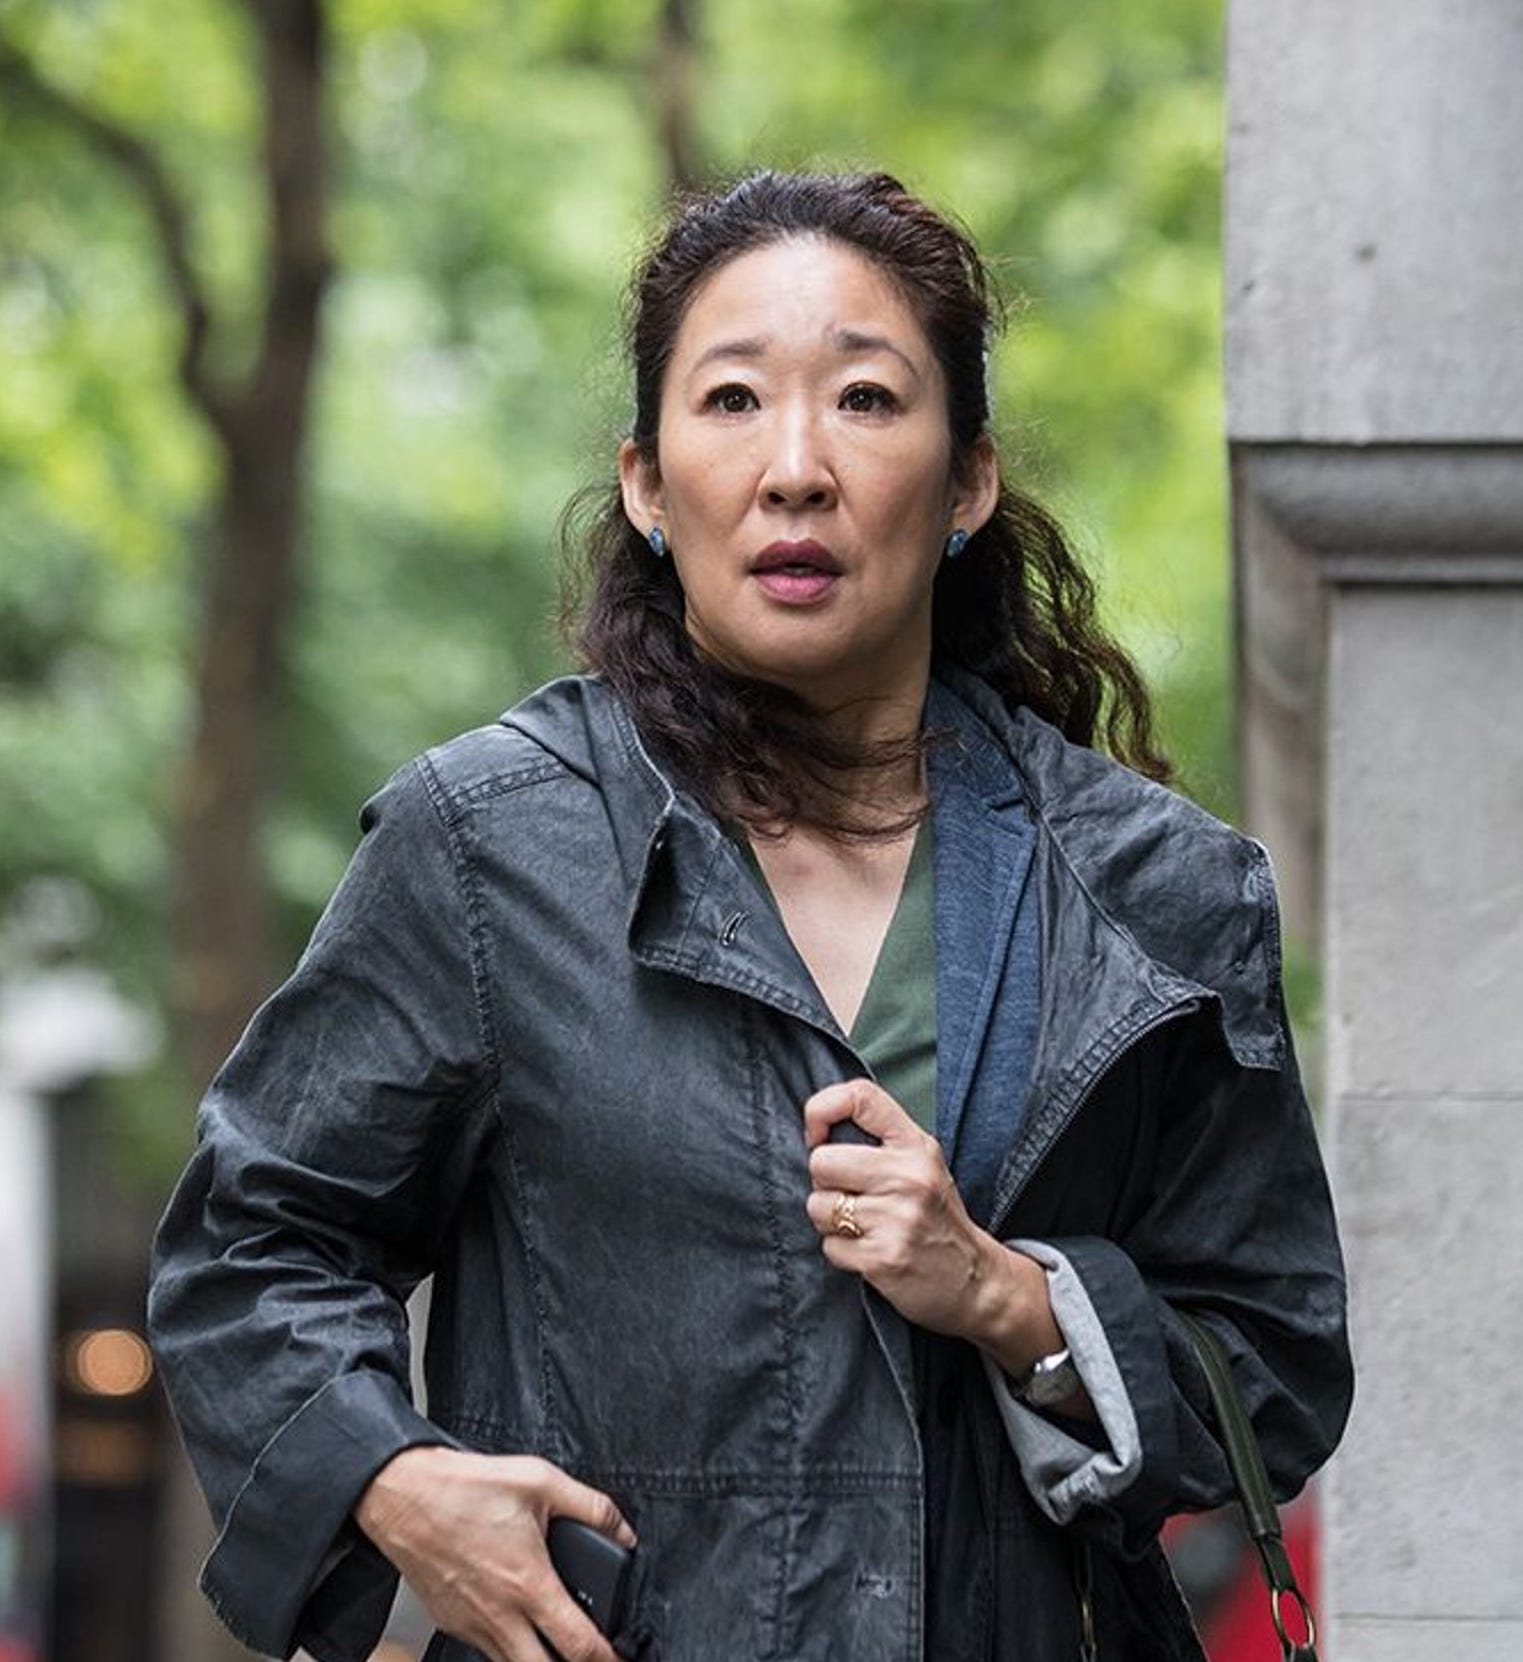 636585199663318392 Killing Eve 2 10 10 Things You Didn't Know About Killing Eve